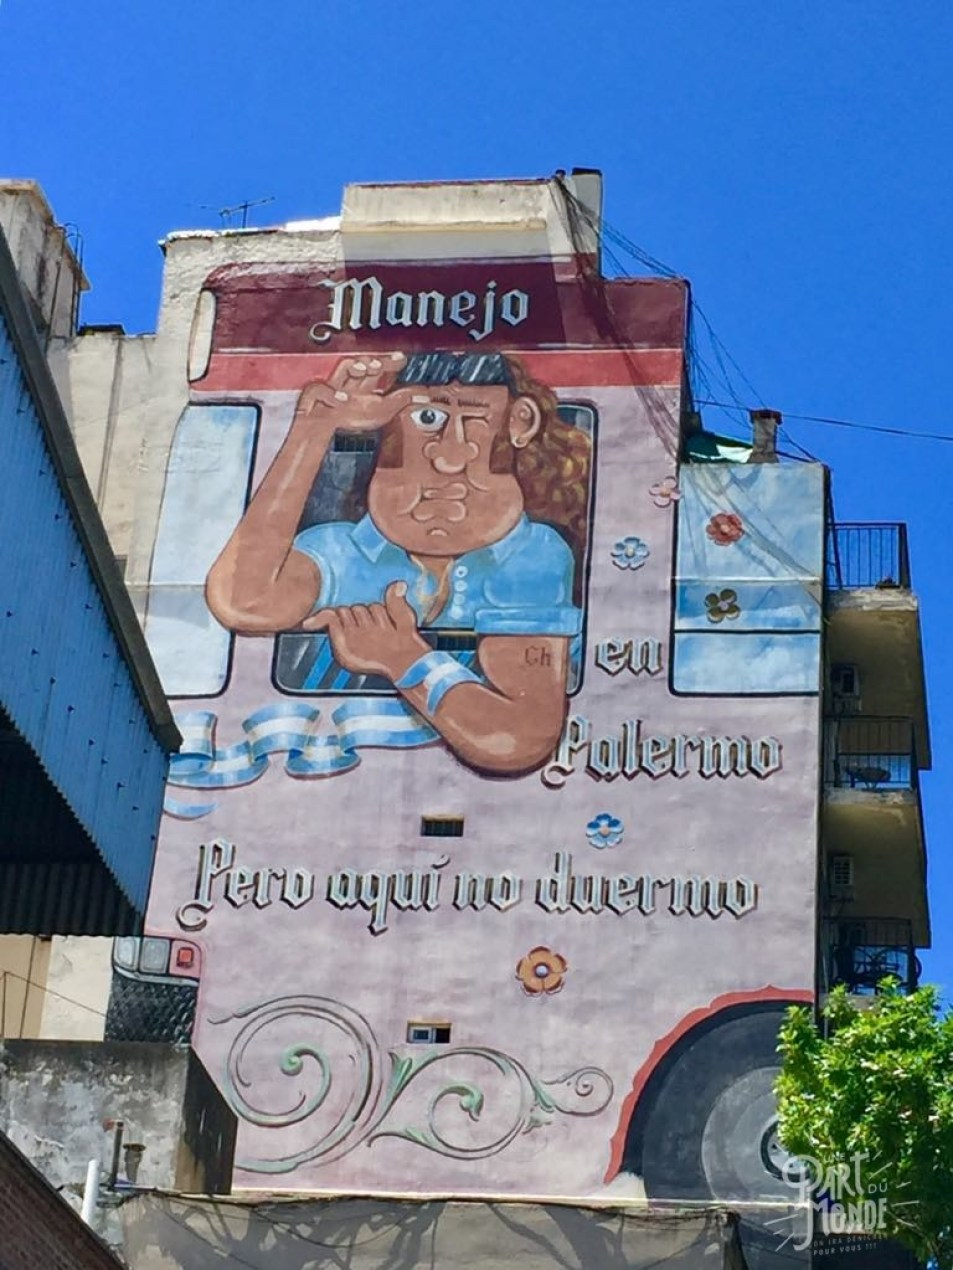 palermo hollywood buenos aires